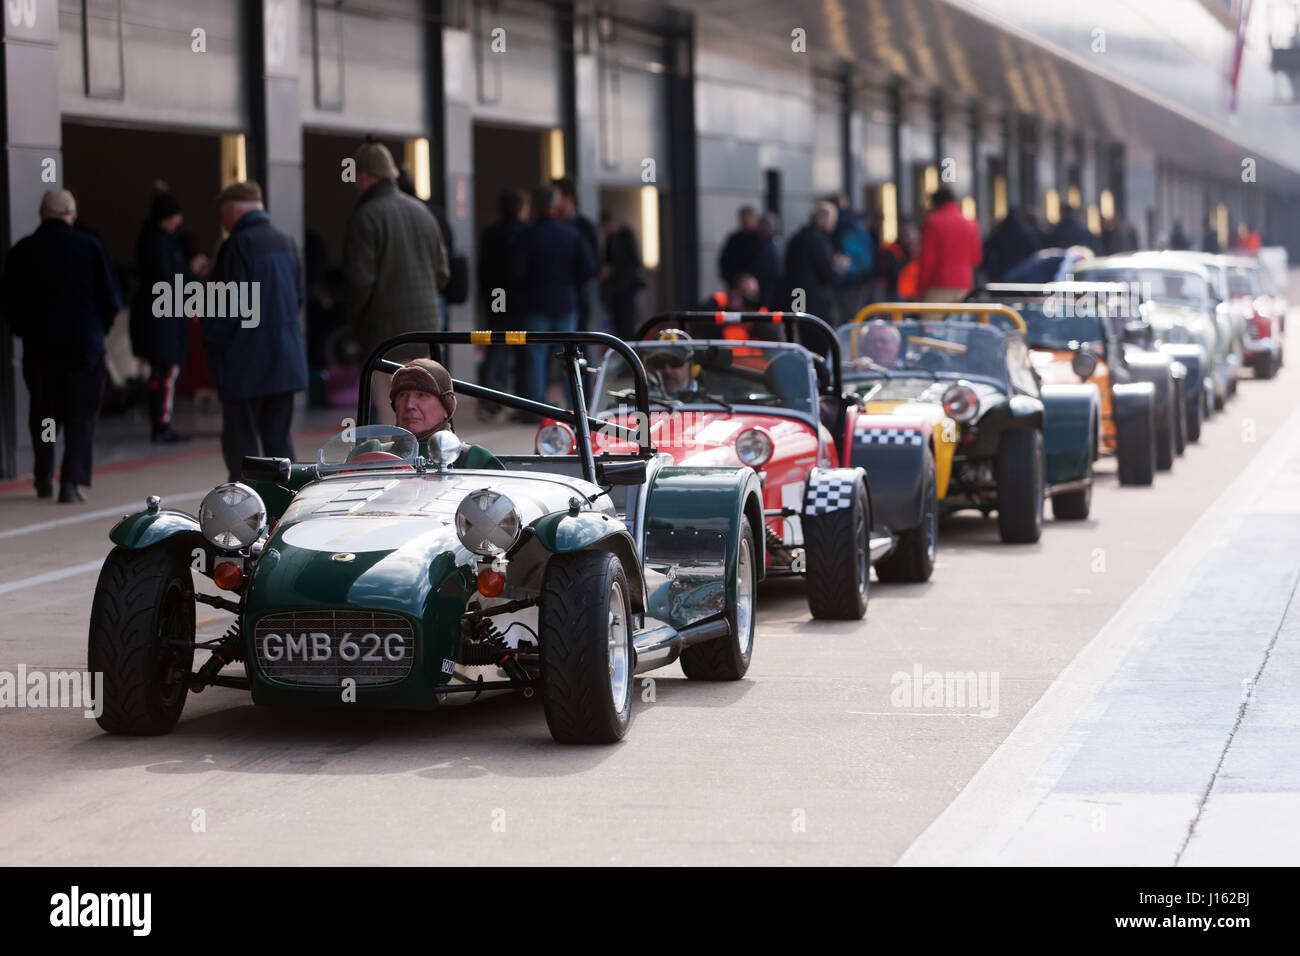 A group of classic Lotus 7 sports cars prepare to parade around the track, during the Silverstone Classic Media - Stock Image